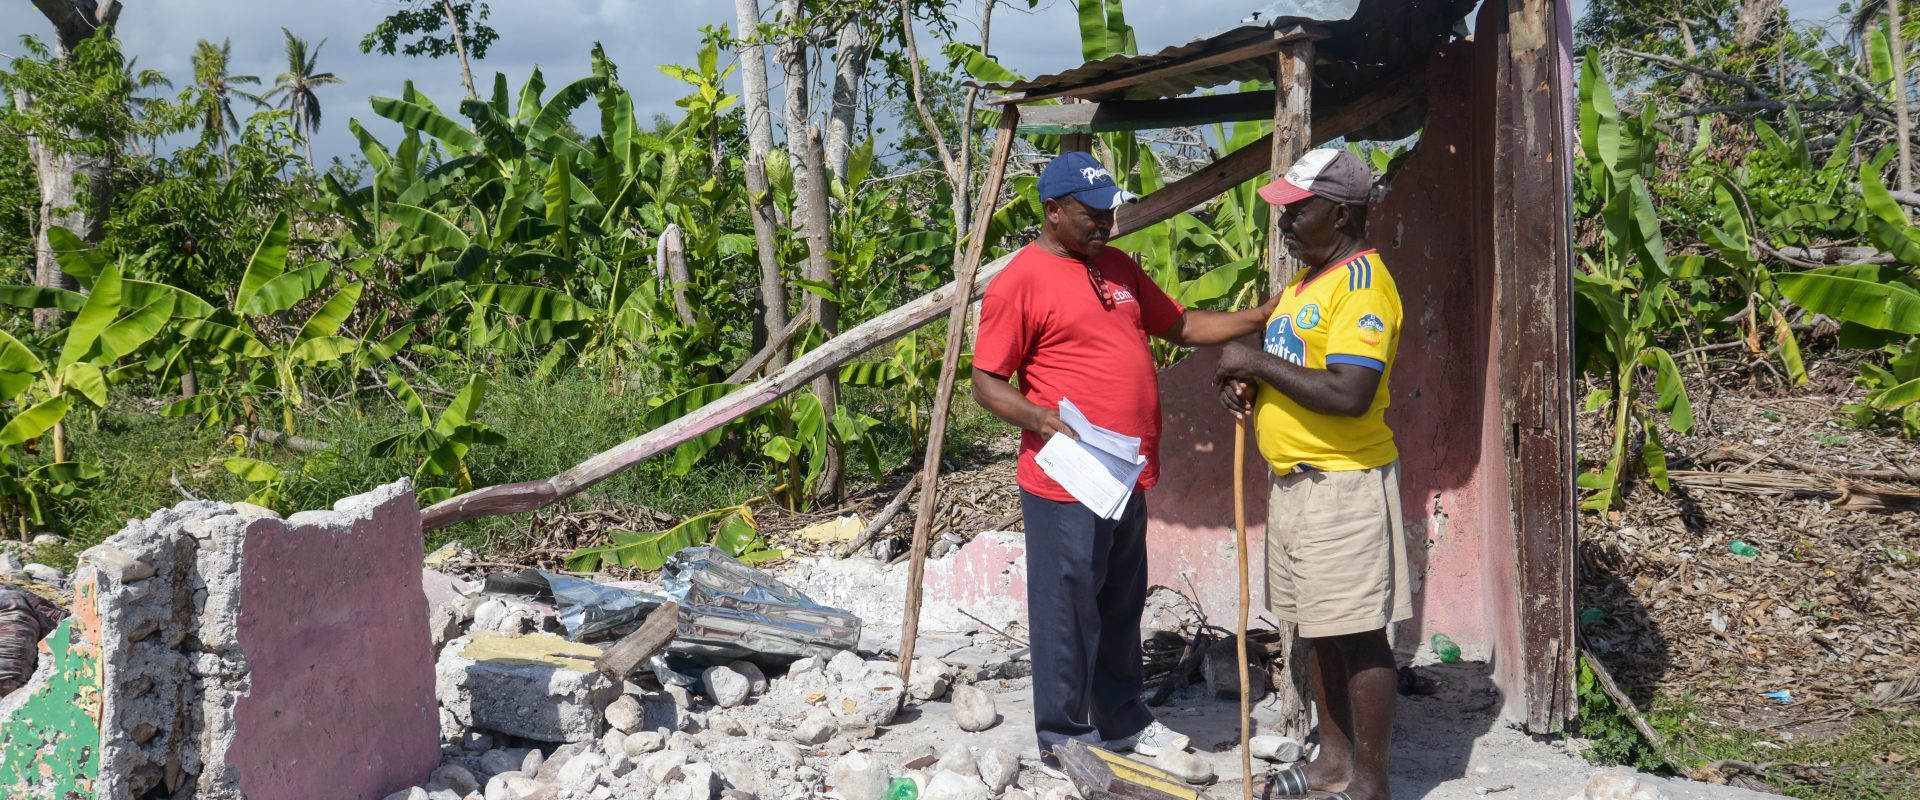 Rene showing CBM Community Worker what is left of his house in Torbeck, Haiti, after Hurricane Matthew made landfall.